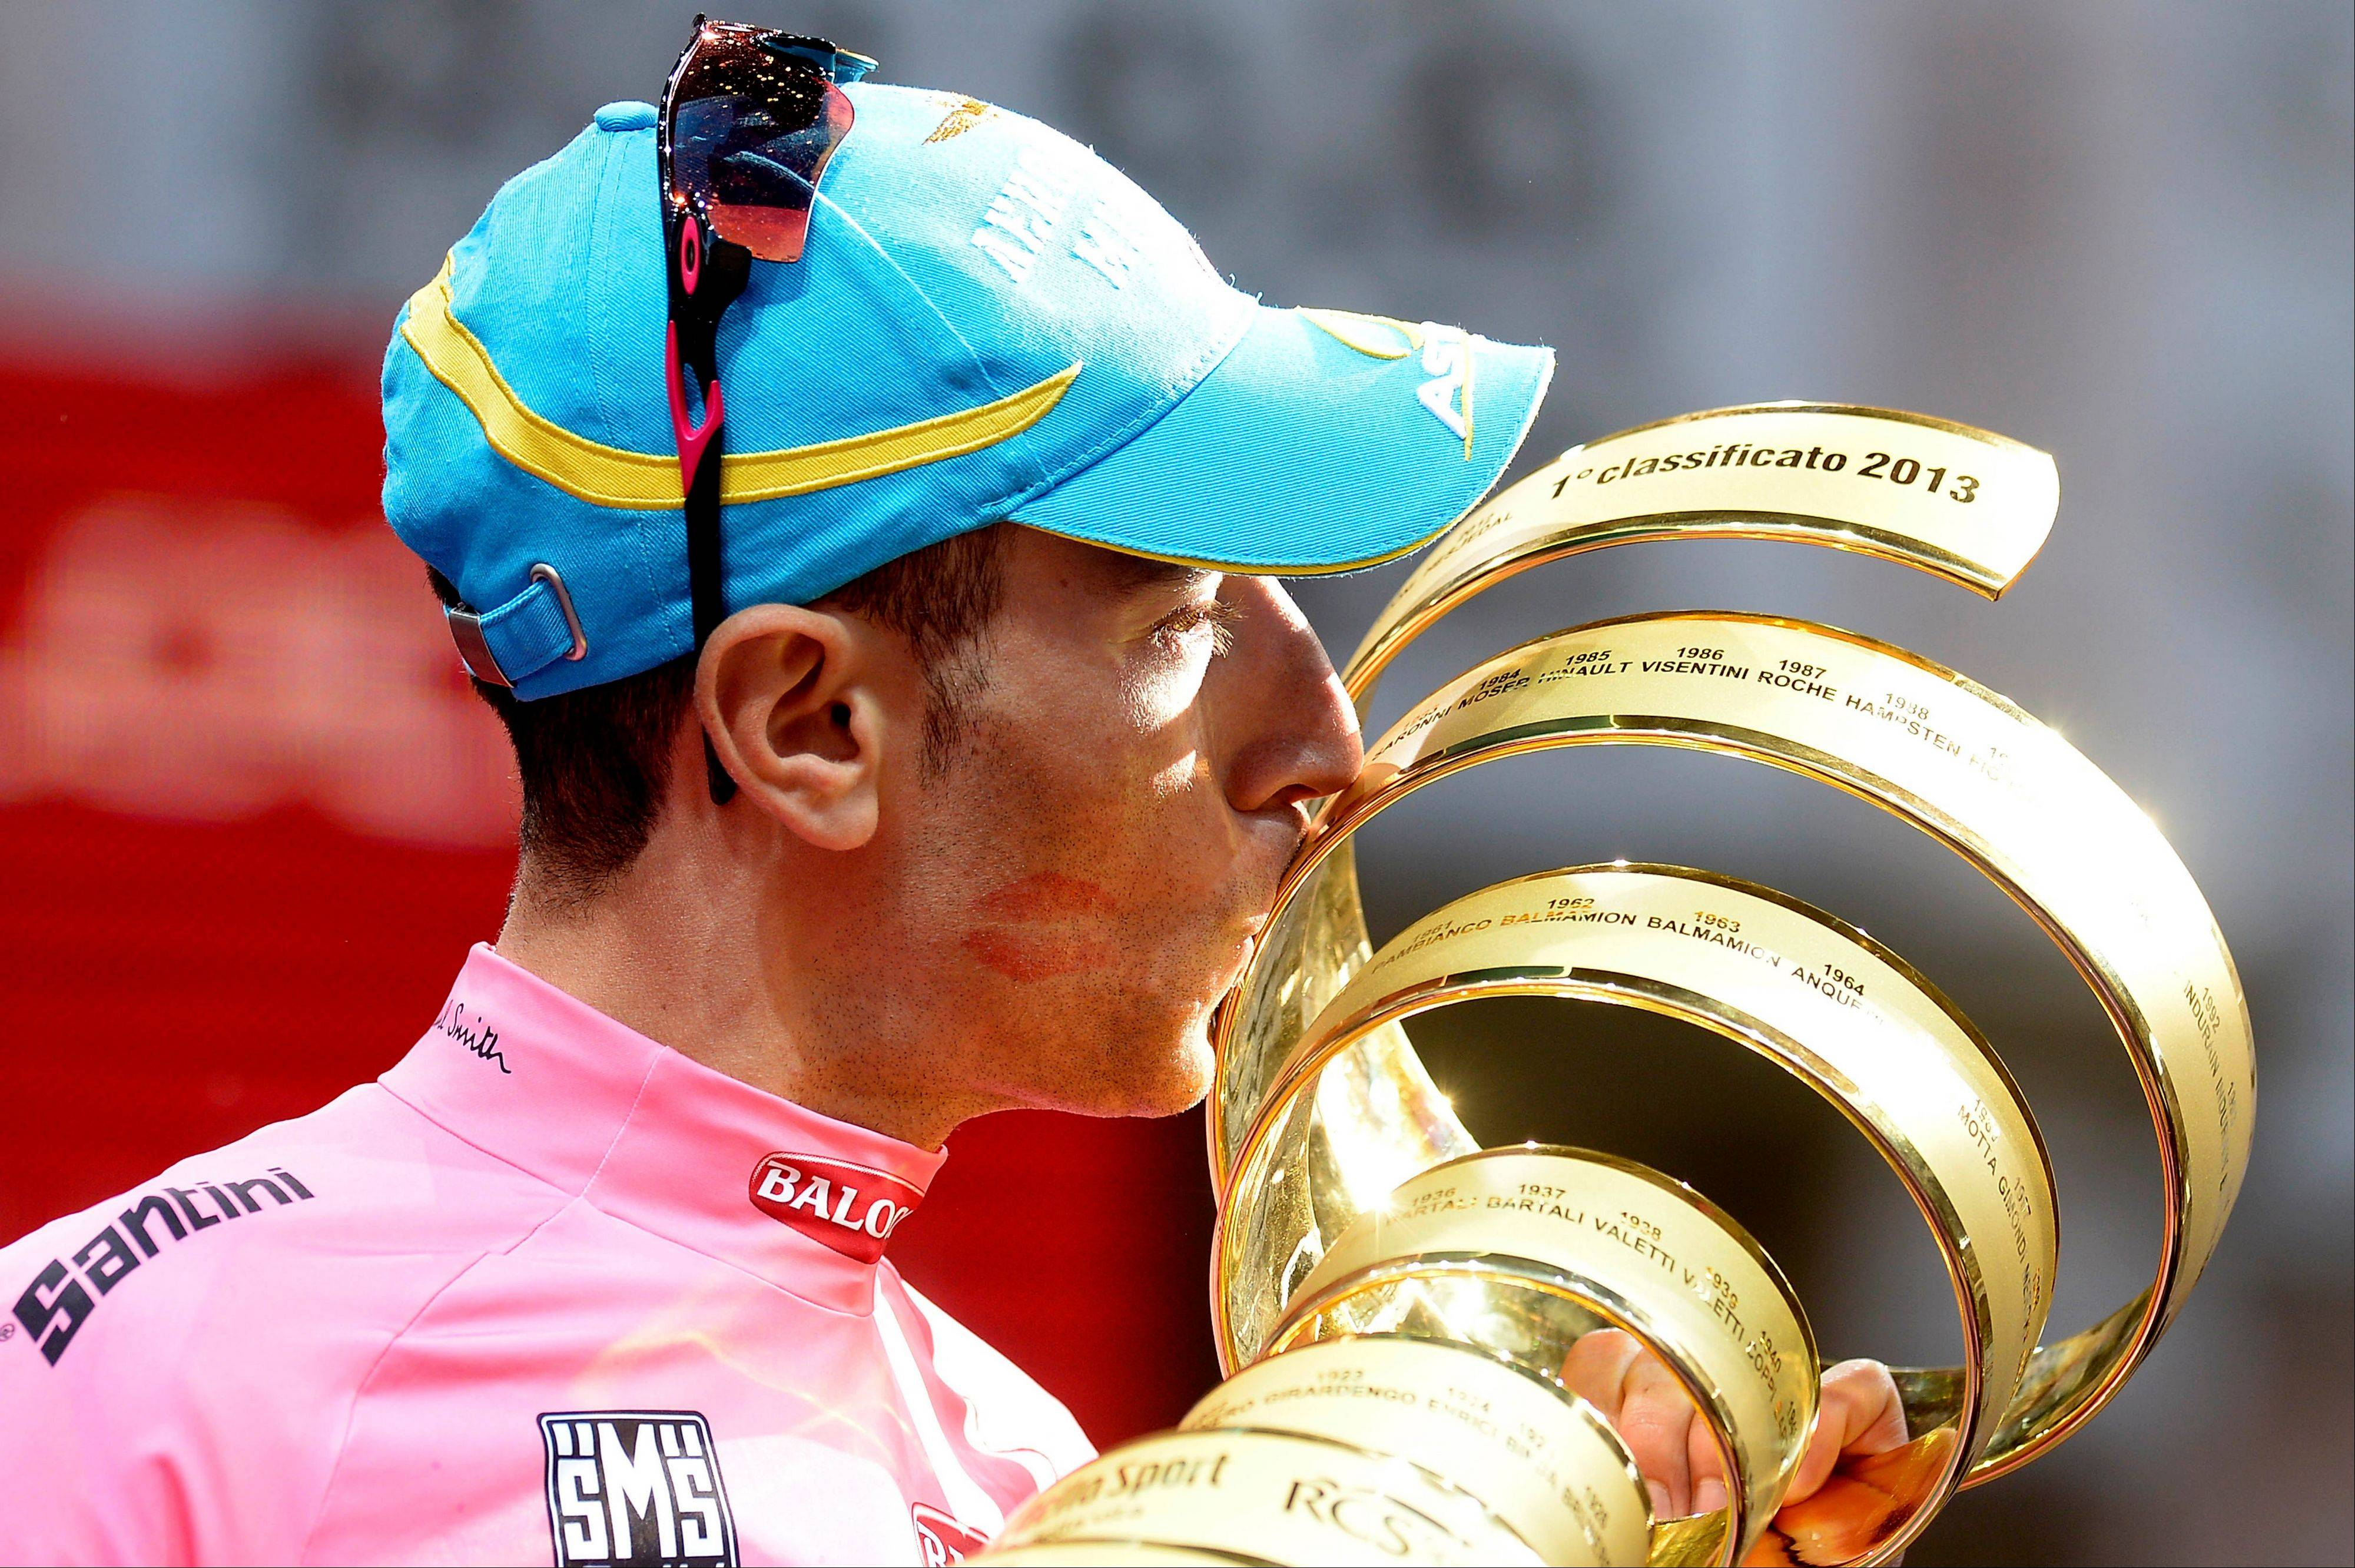 Italy�s Vincenzo Nibali kisses the trophy after winning the Giro d�Italia in May. Nibali will be seeking his second major title of the year when the mountain-heavy Spanish Vuelta begins on Saturday.